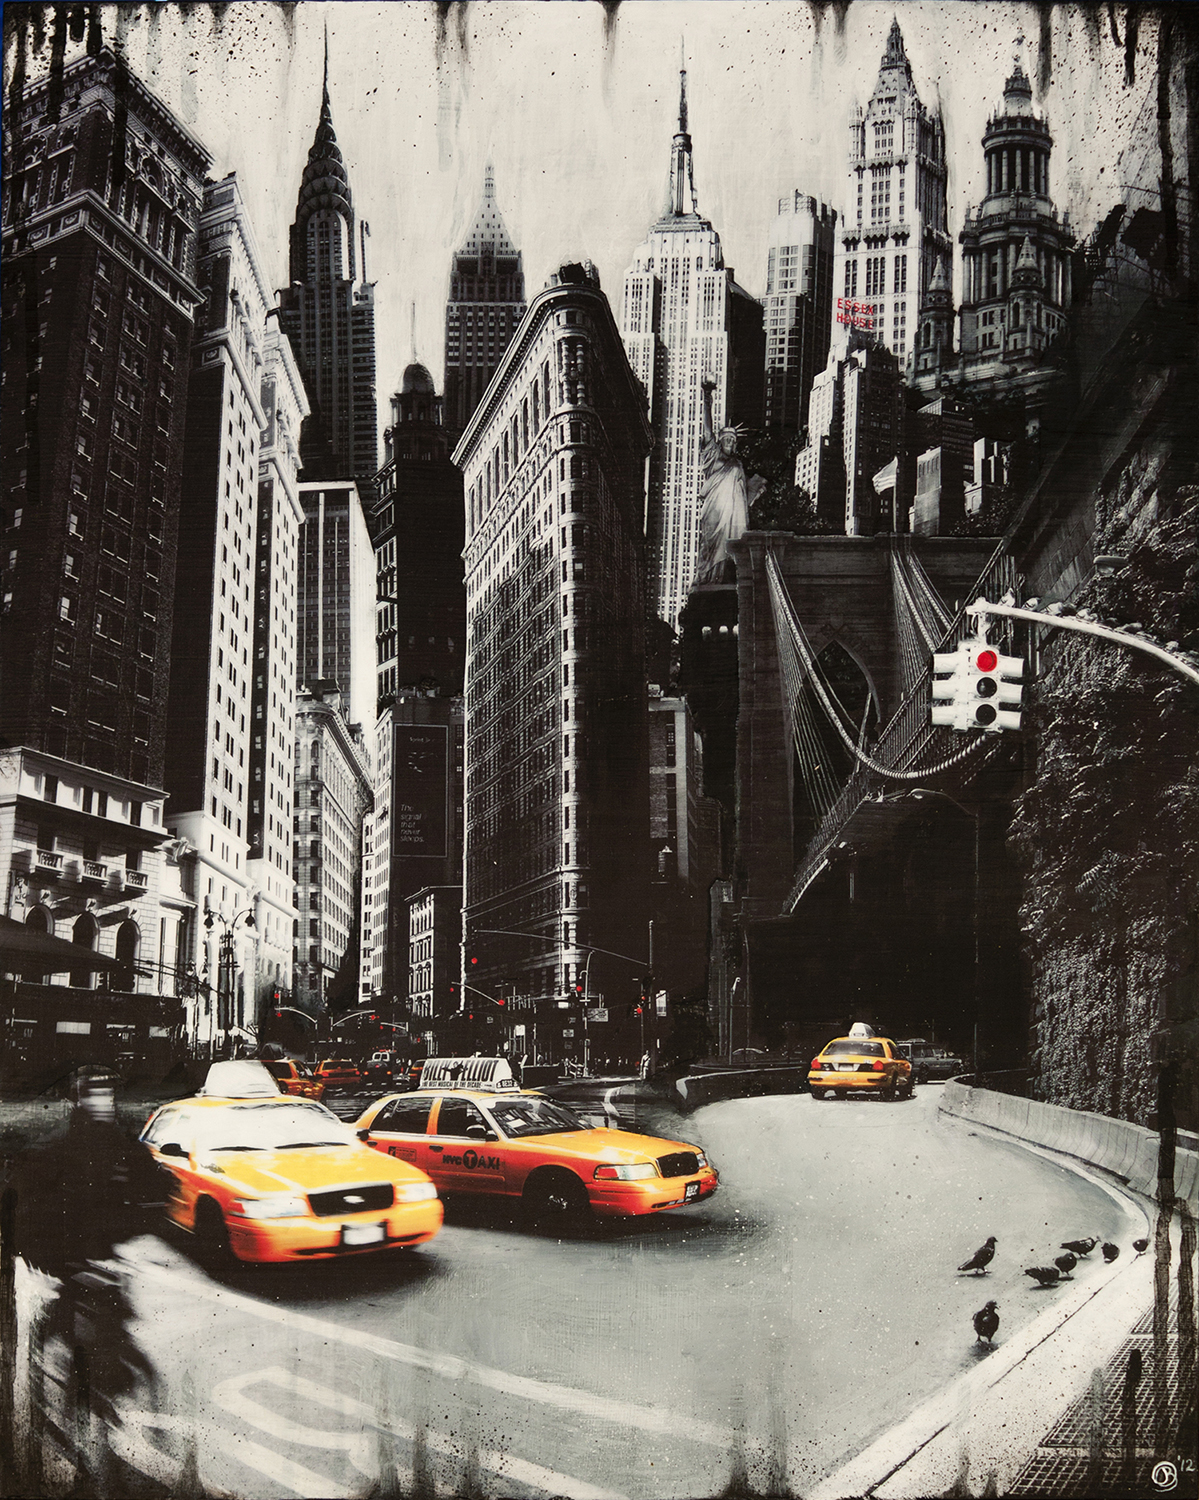 """""""NYC Traffic"""", 2012, by Denise Buisman Pilger. Mixed media on wood, 20"""" x 16"""". Copyright © 2012 Denise Buisman Pilger. Used by permission of the artist."""